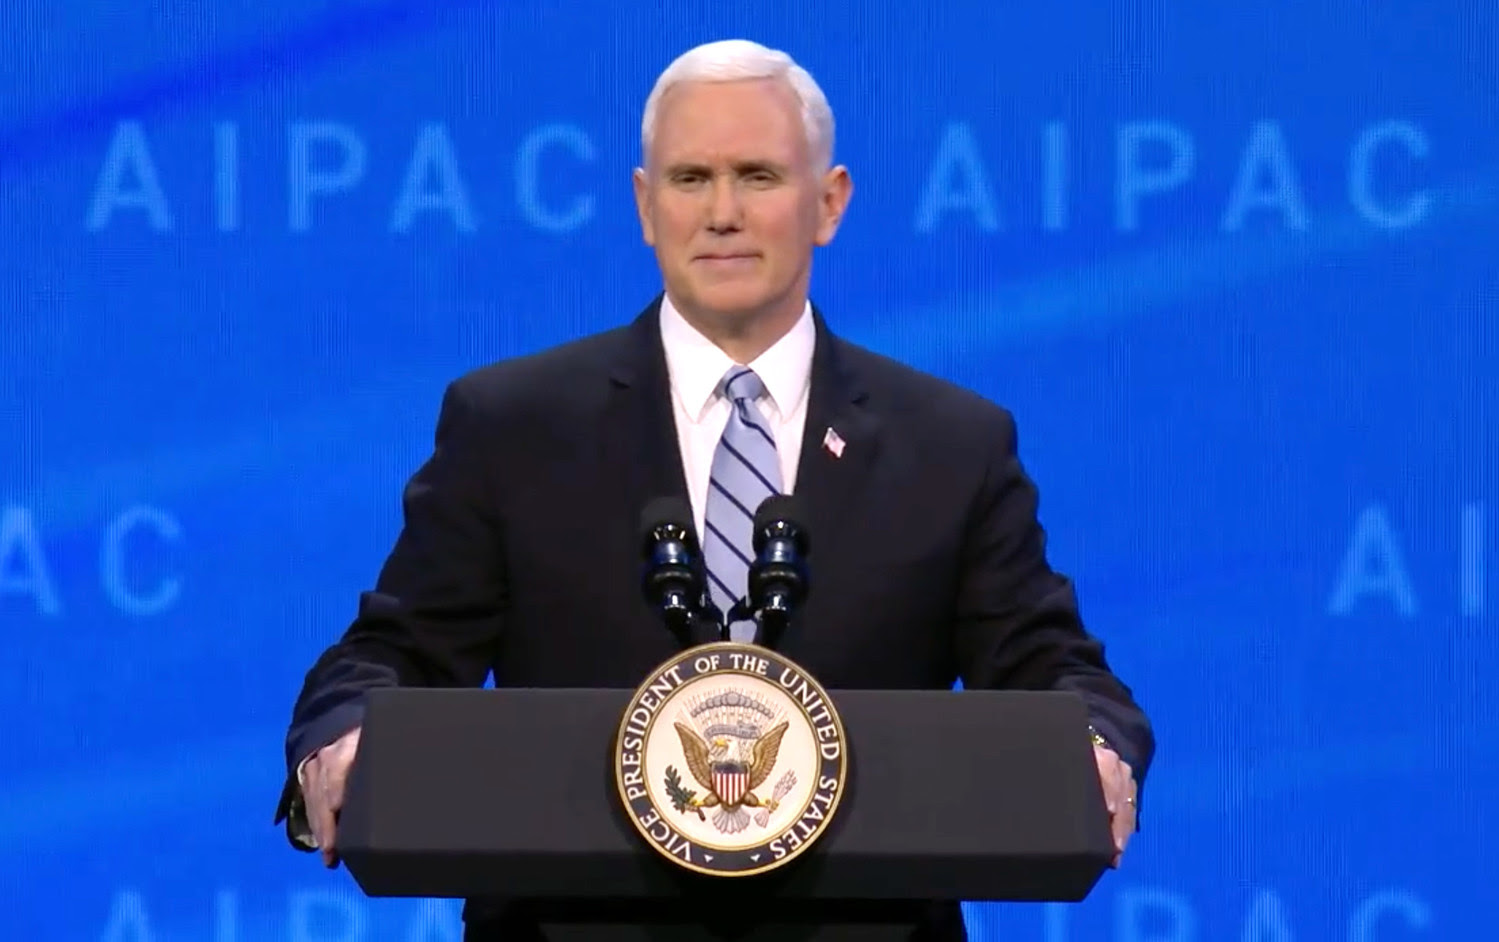 Vice President Mike Pence speaks at the AIPAC Policy Conference on March 5, 2018.